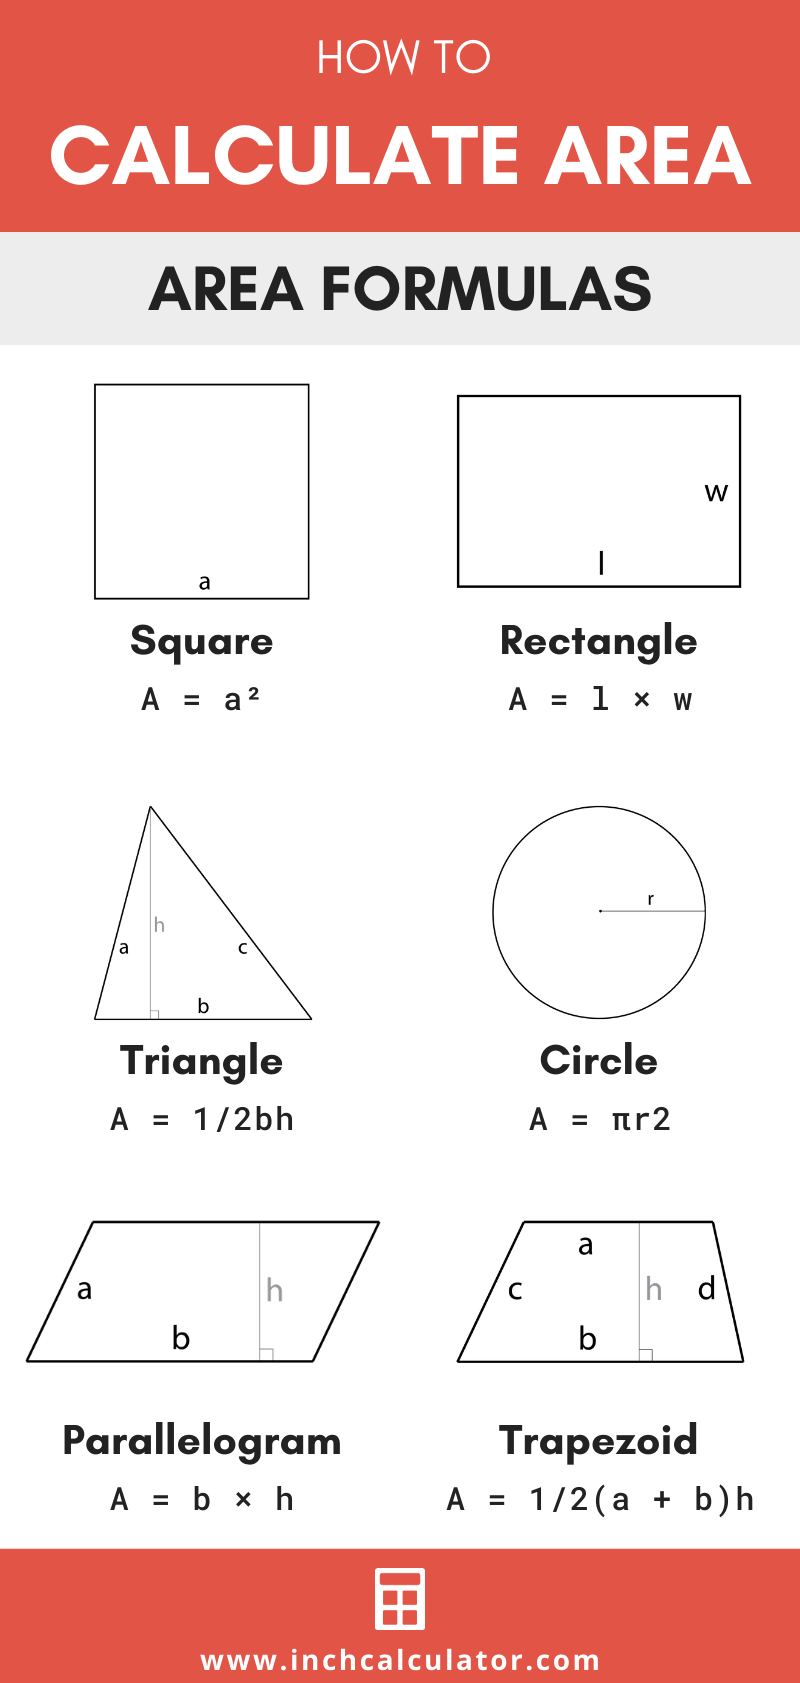 Share area calculator – calculate area of various shapes